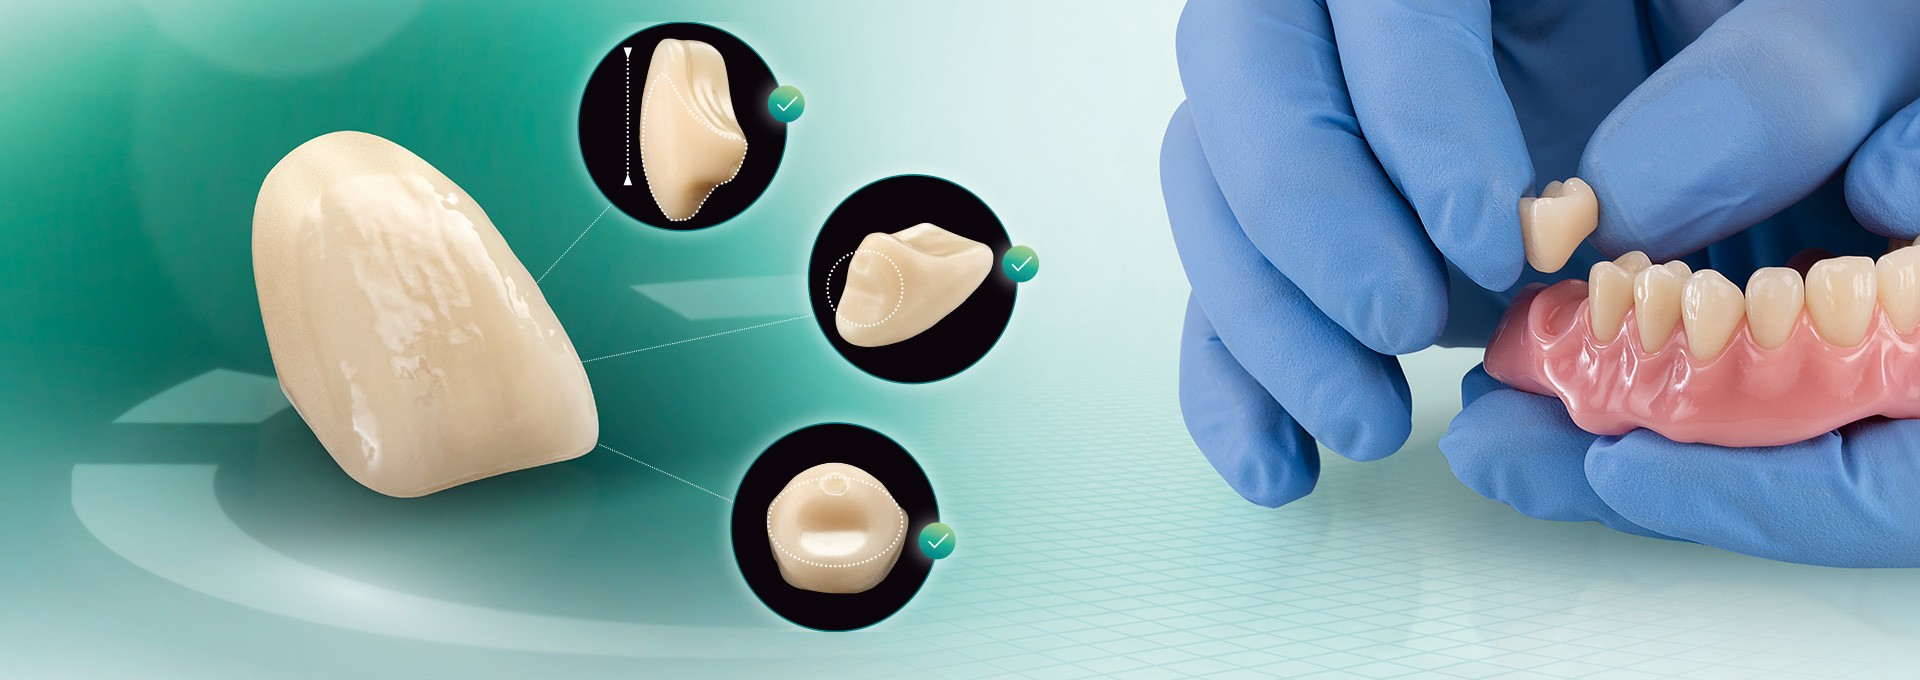 The VITA VIONIC VIGO tooth from different perspectives and a digitally produced denture base